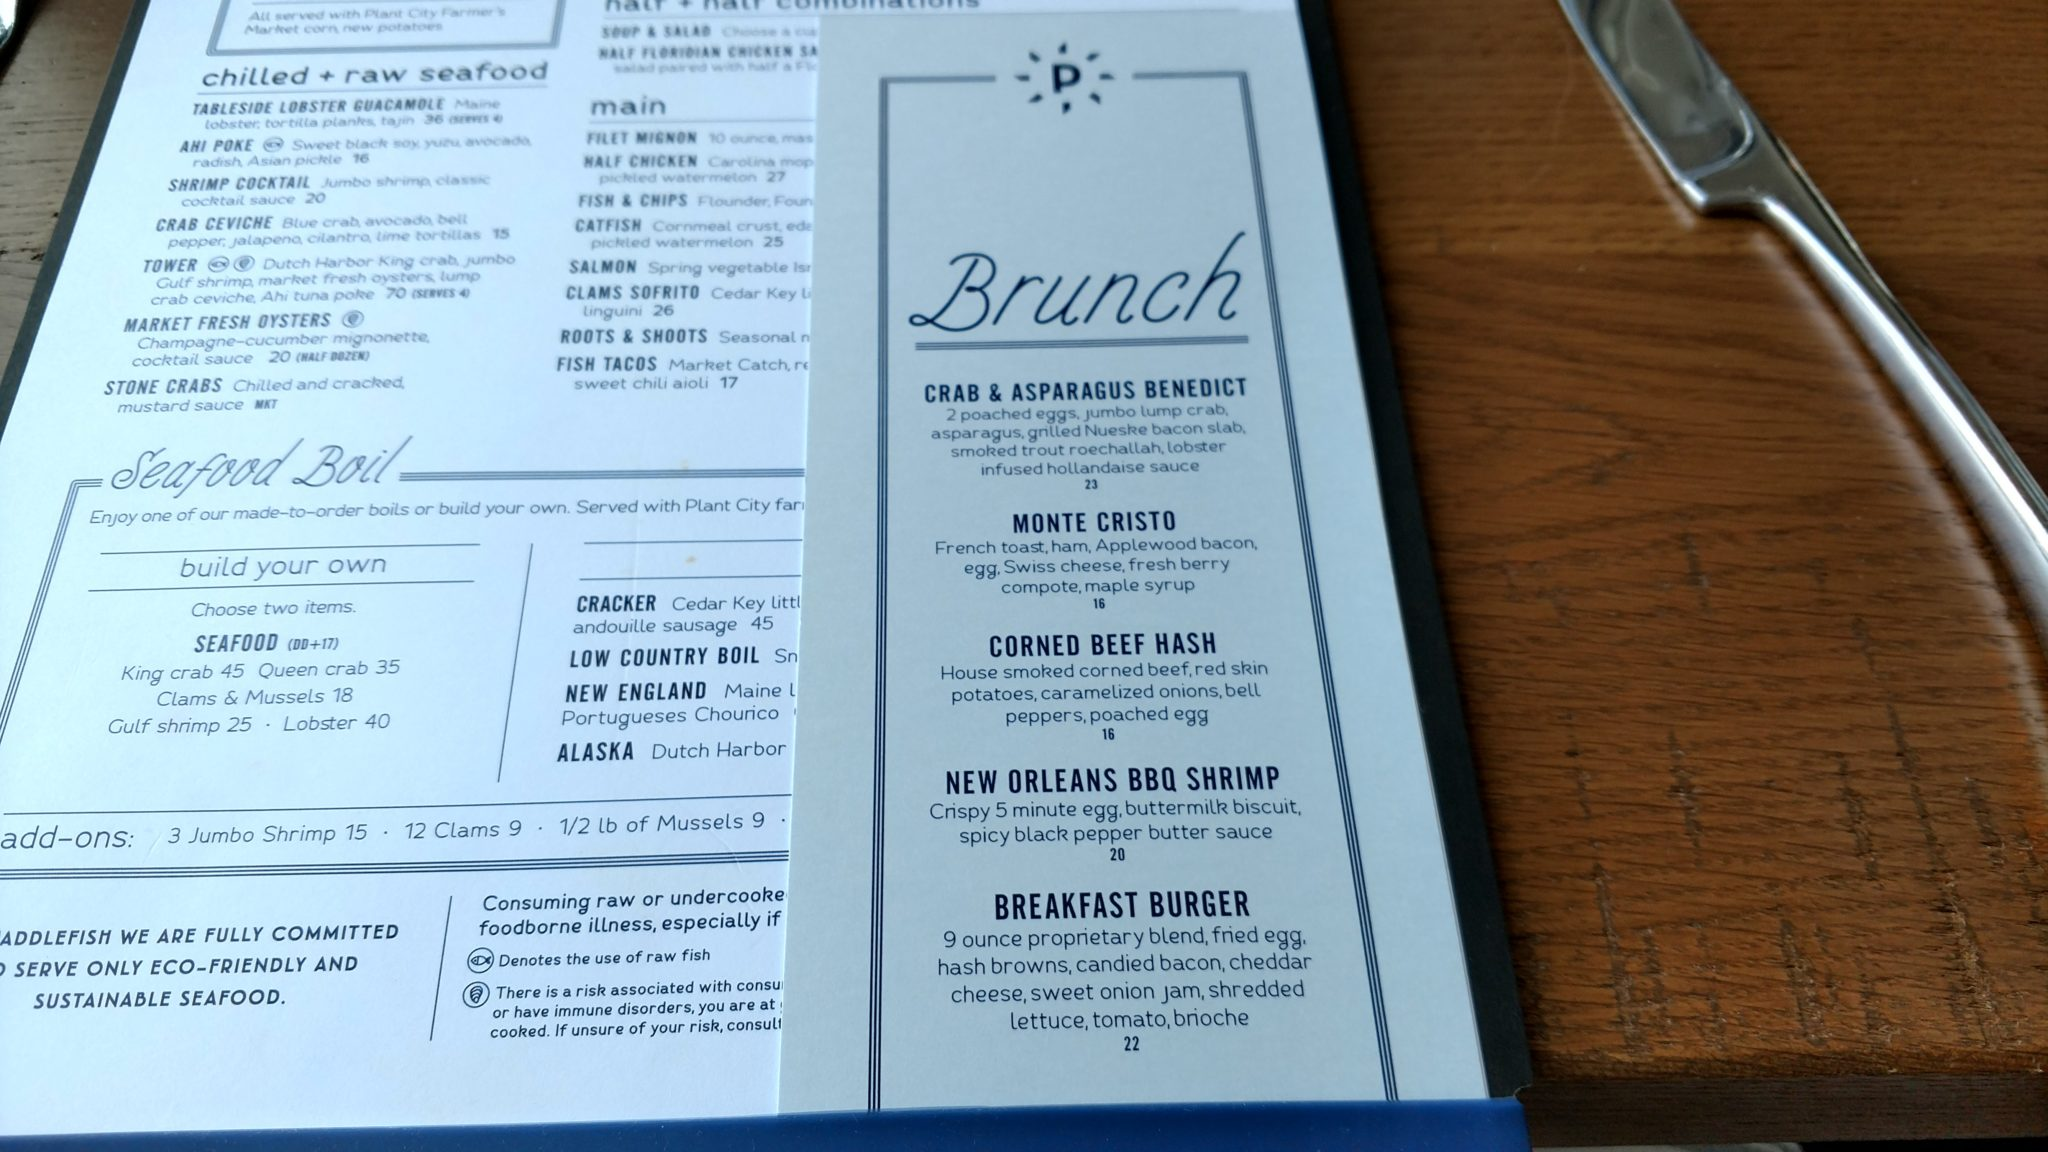 Review: Sunday Brunch at Paddlefish in Disney Springs - Chip and Co